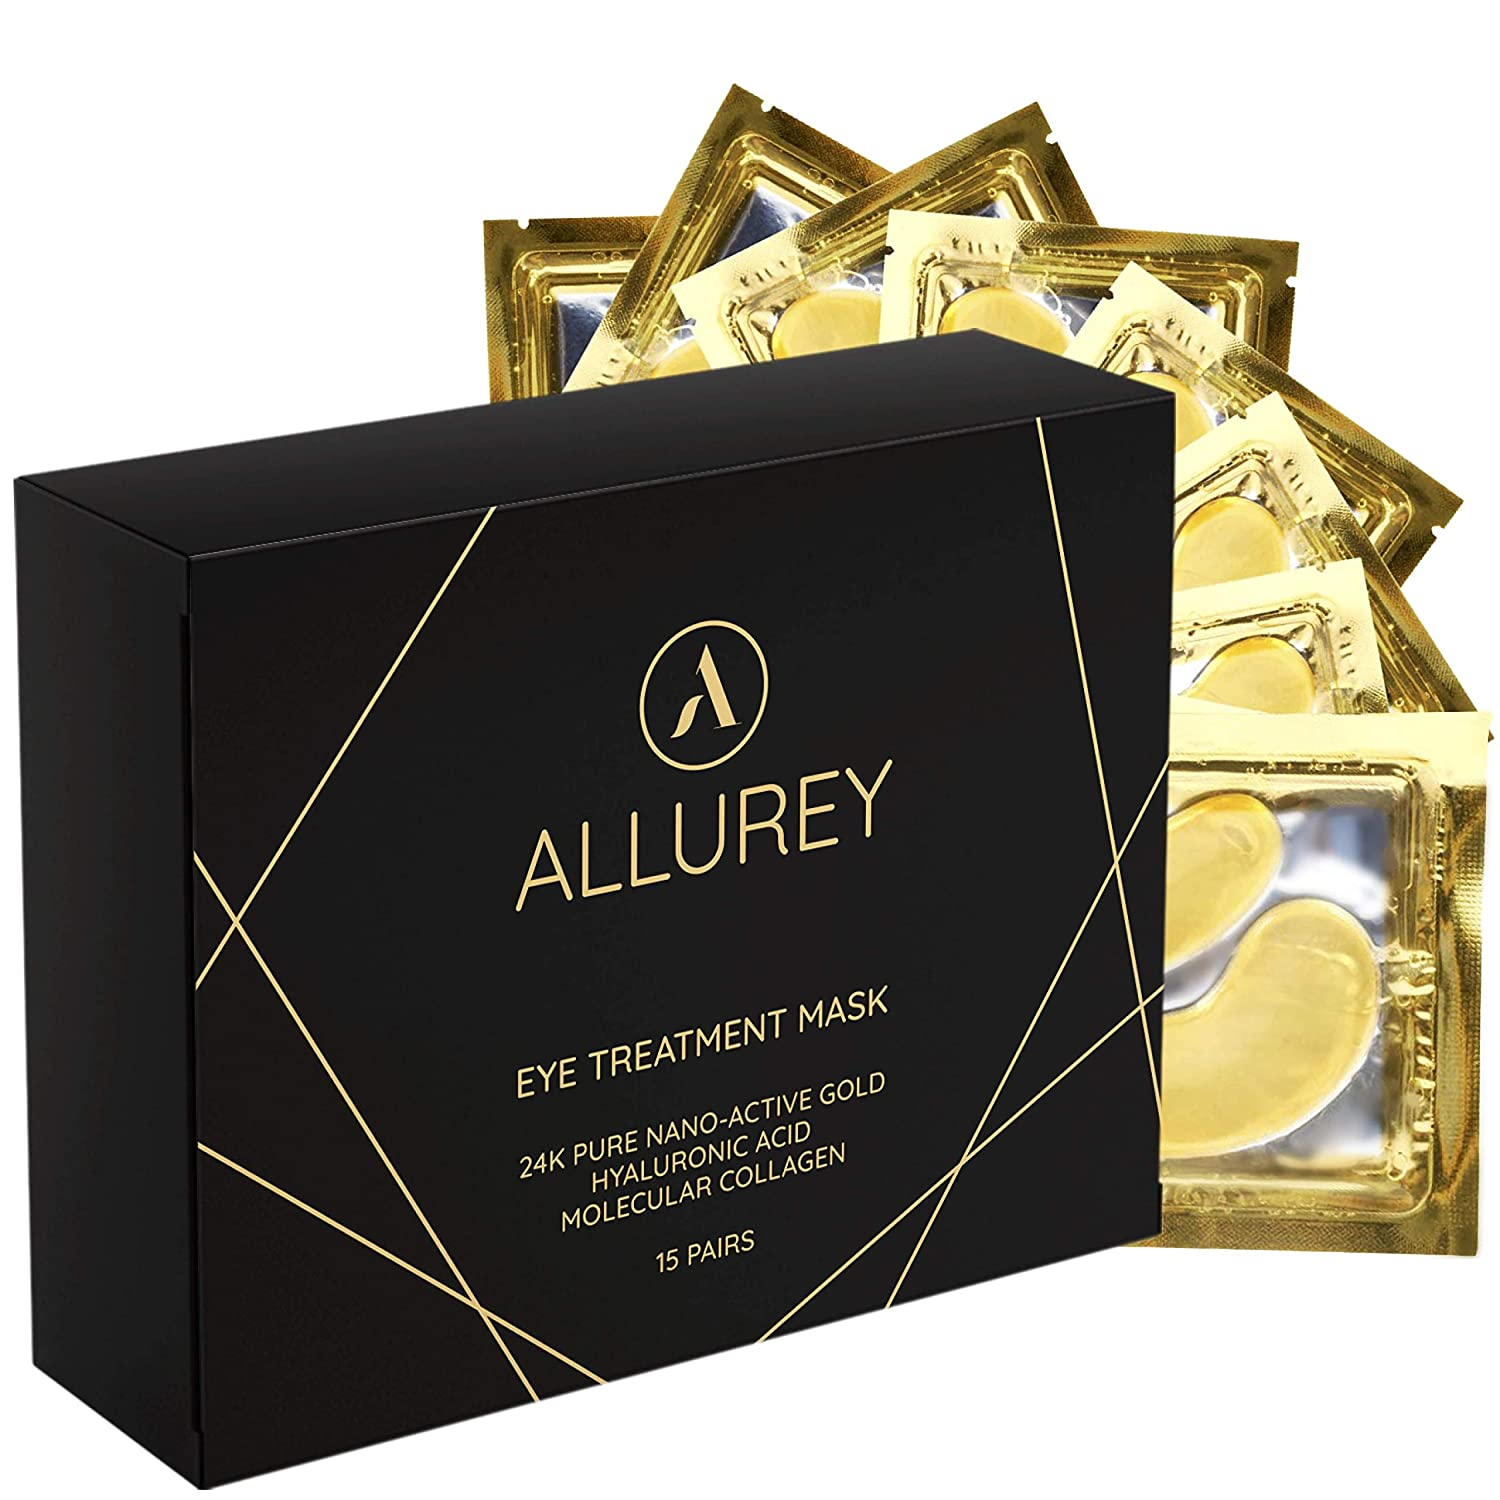 ALLUREY 24K Gold Collagen Eye Mask, Best Eye Treatment, Anti-aging and Anti-wrinkle Effect, Moisturizes, Reduces Puffiness and Dark Circles, Under Eye Patches (15 Pairs)